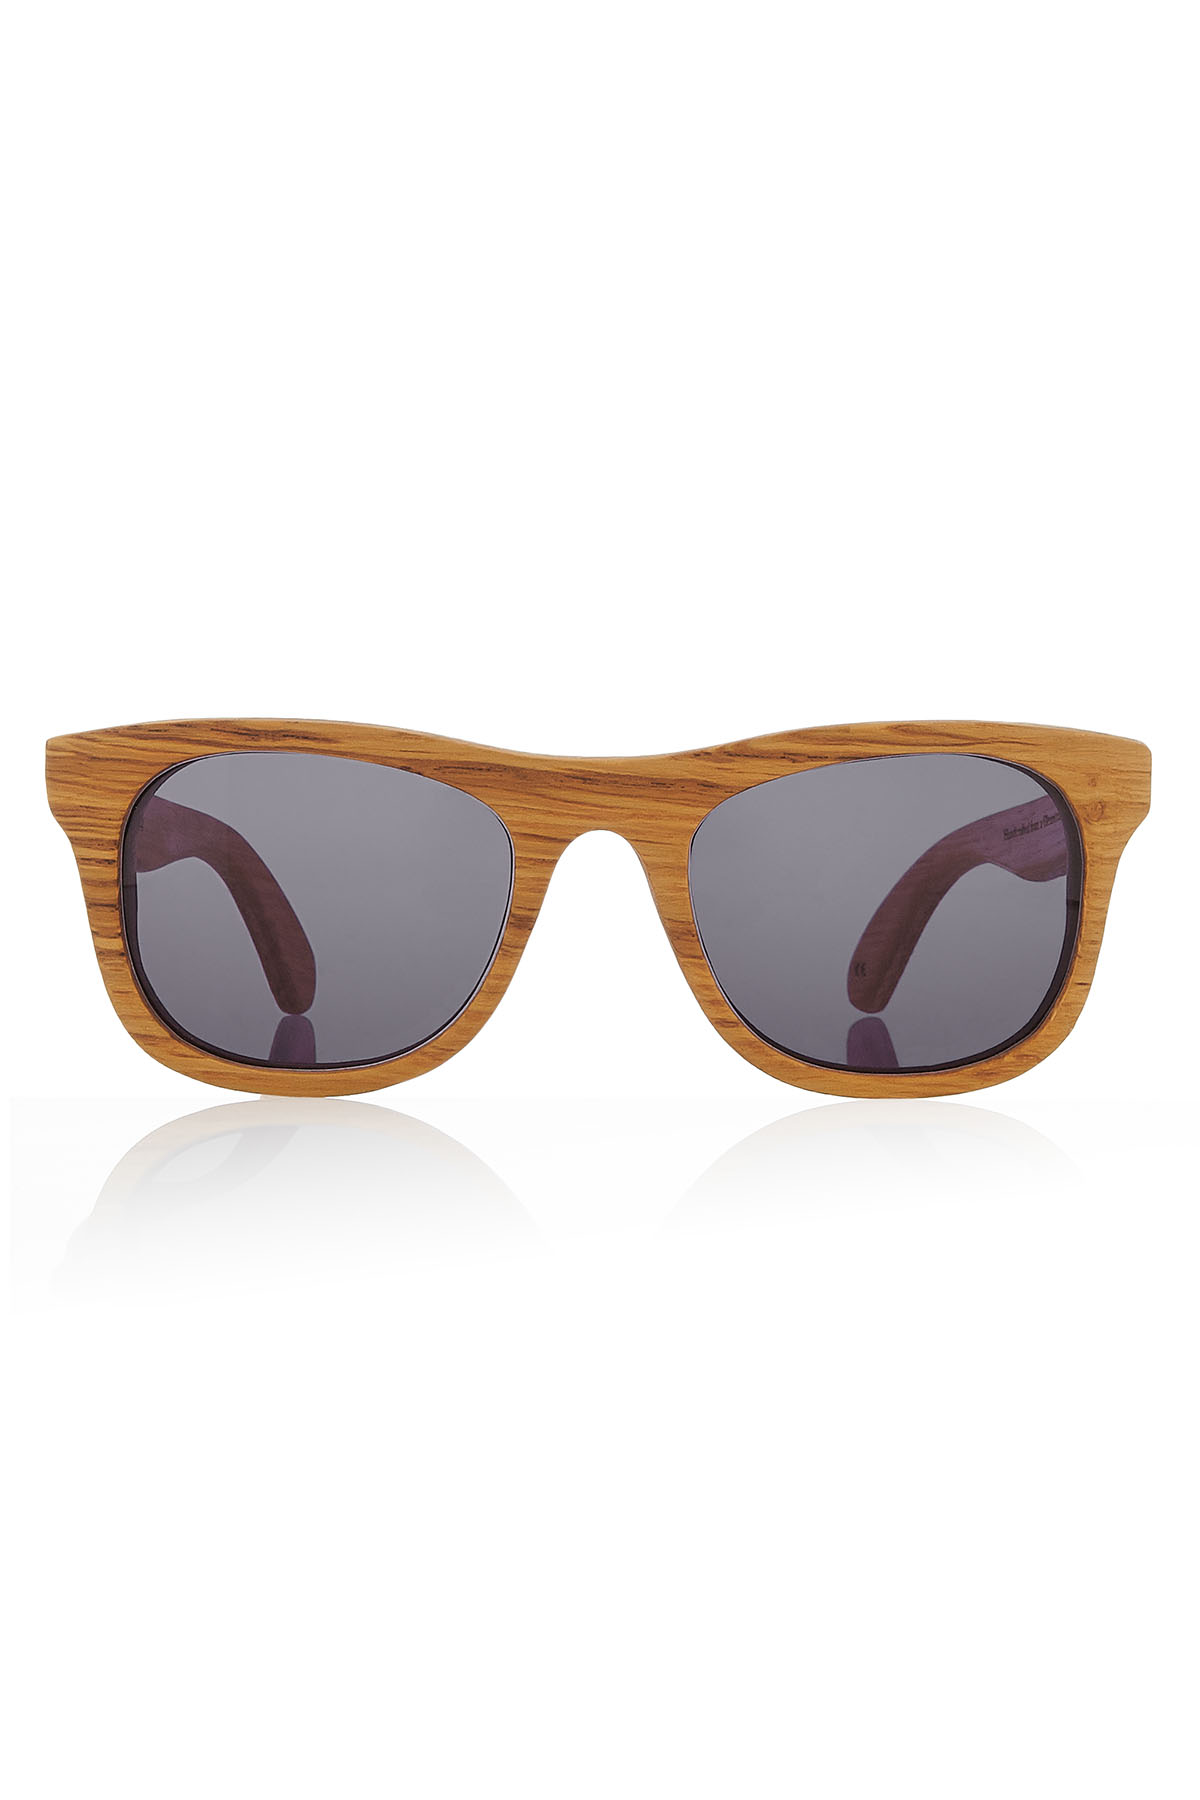 Stylish Sunglasses Made From Original Whisky Casks 7